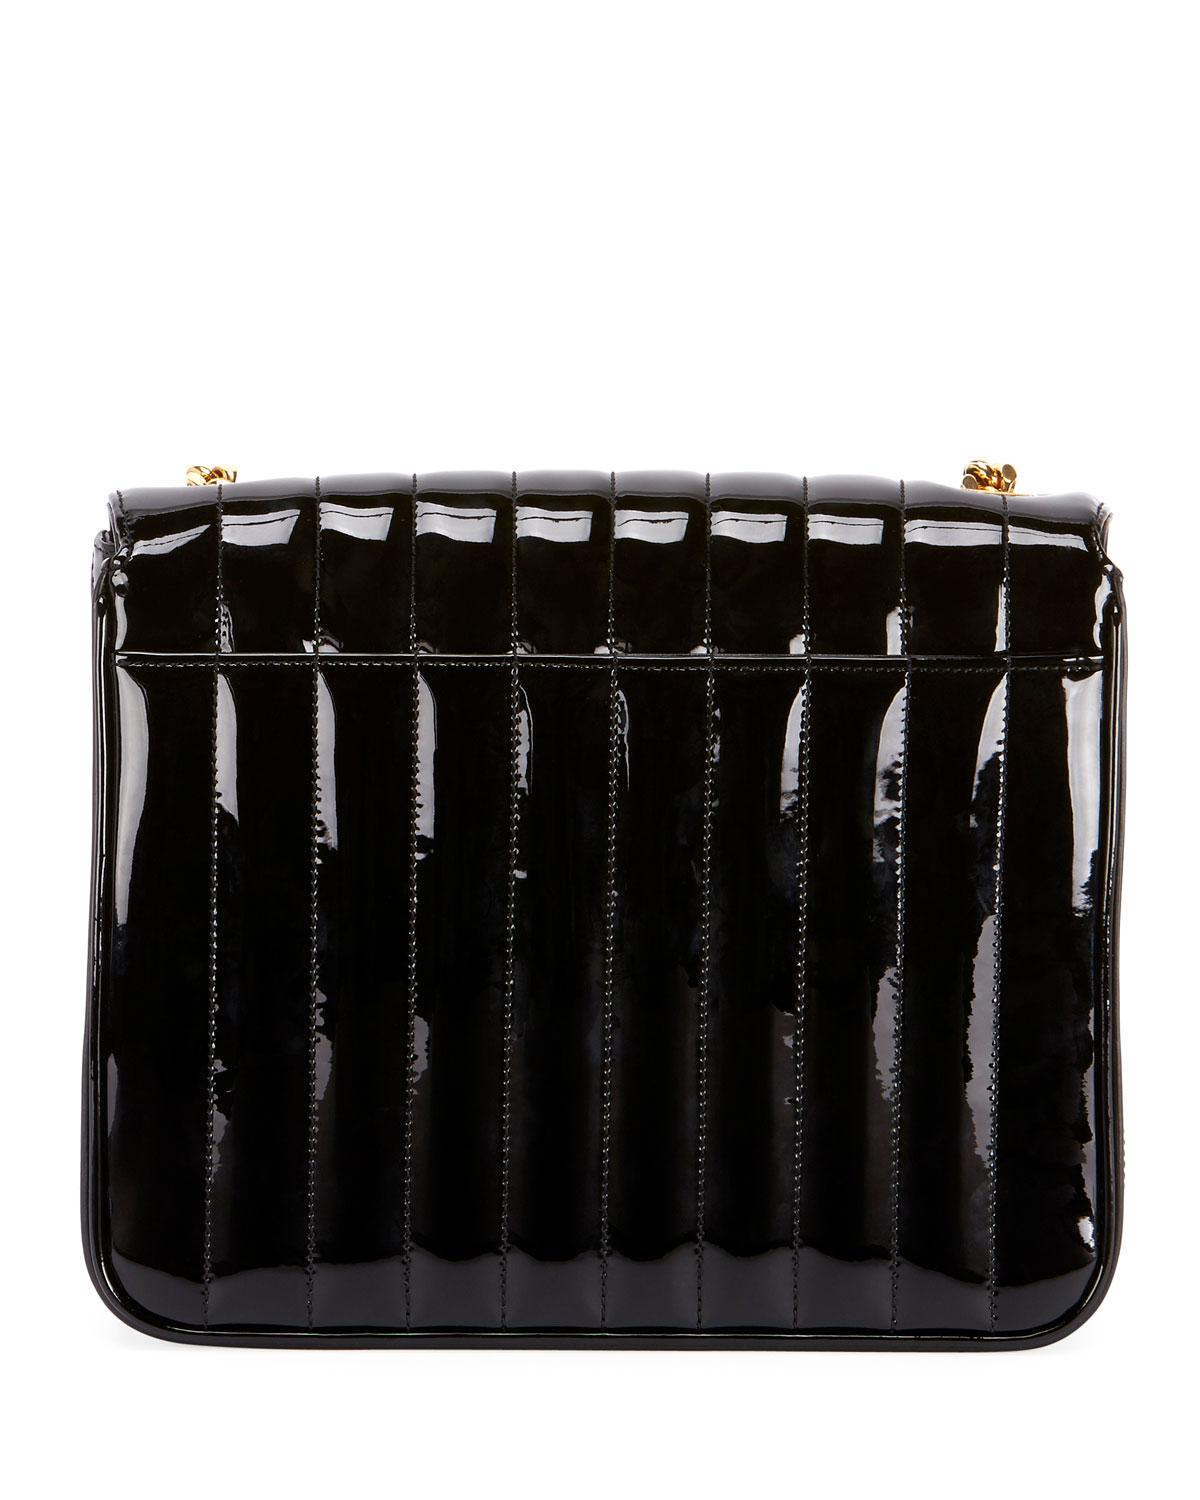 Saint Laurent - Black Vicky Monogram Ysl Large Quilted Leather Chain  Crossbody Bag - Lyst. View fullscreen 9c72207a66a81